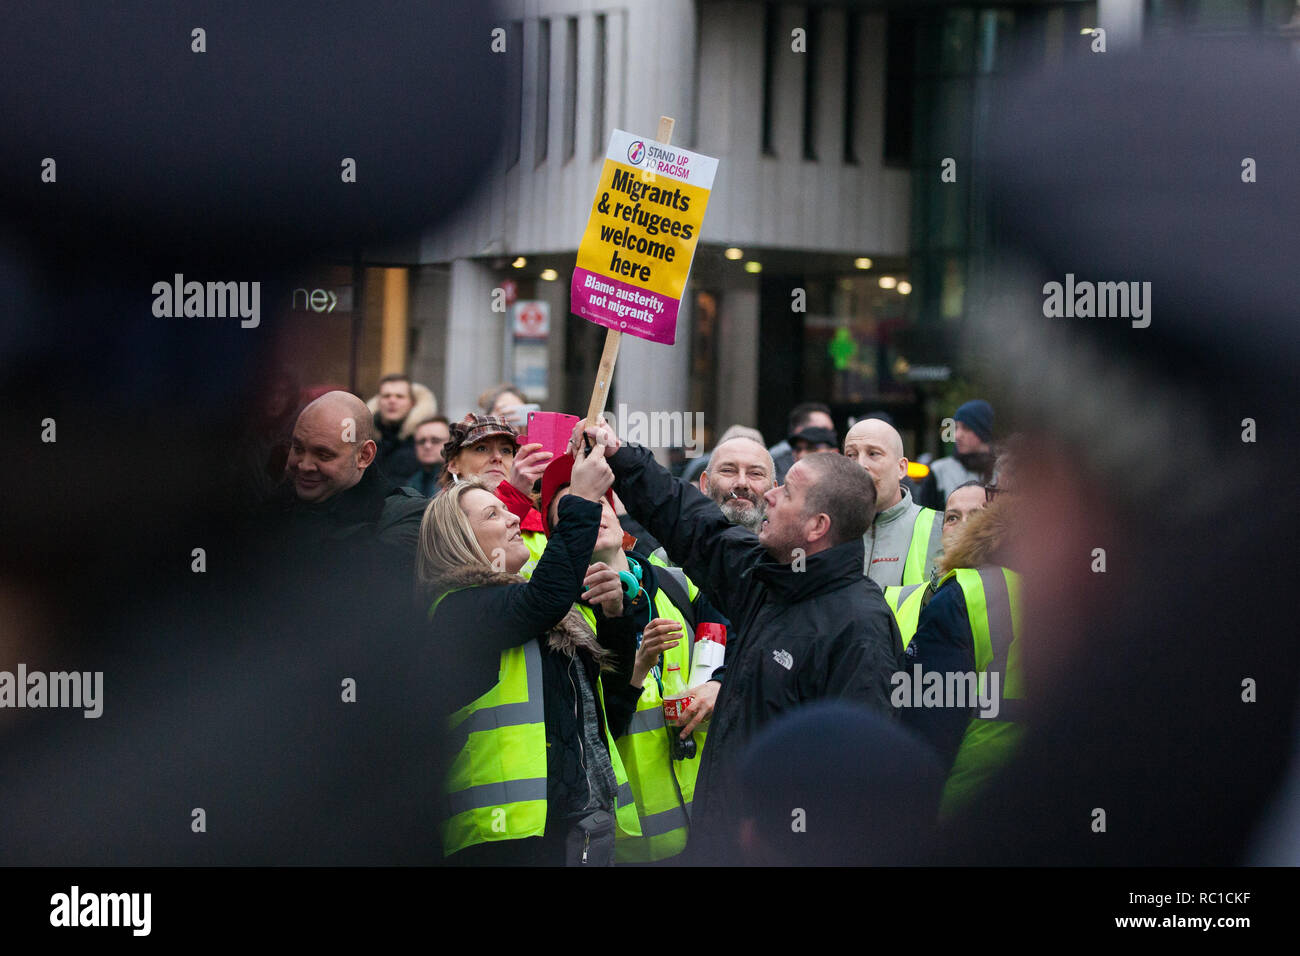 London, UK. 12th January, 2019. Max Hammet-Millay (c, partially obscured) stands among around fifty supporters of far-right group Liberty Defenders being kept apart by police from hundreds of protesters taking part in a 'Britain is Broken: General Election Now' demonstration organised by the People's Assembly Against Austerity. Some members of both groups were wearing yellow vests in solidarity with the 'gilets jaunes' in France. Credit: Mark Kerrison/Alamy Live News - Stock Image